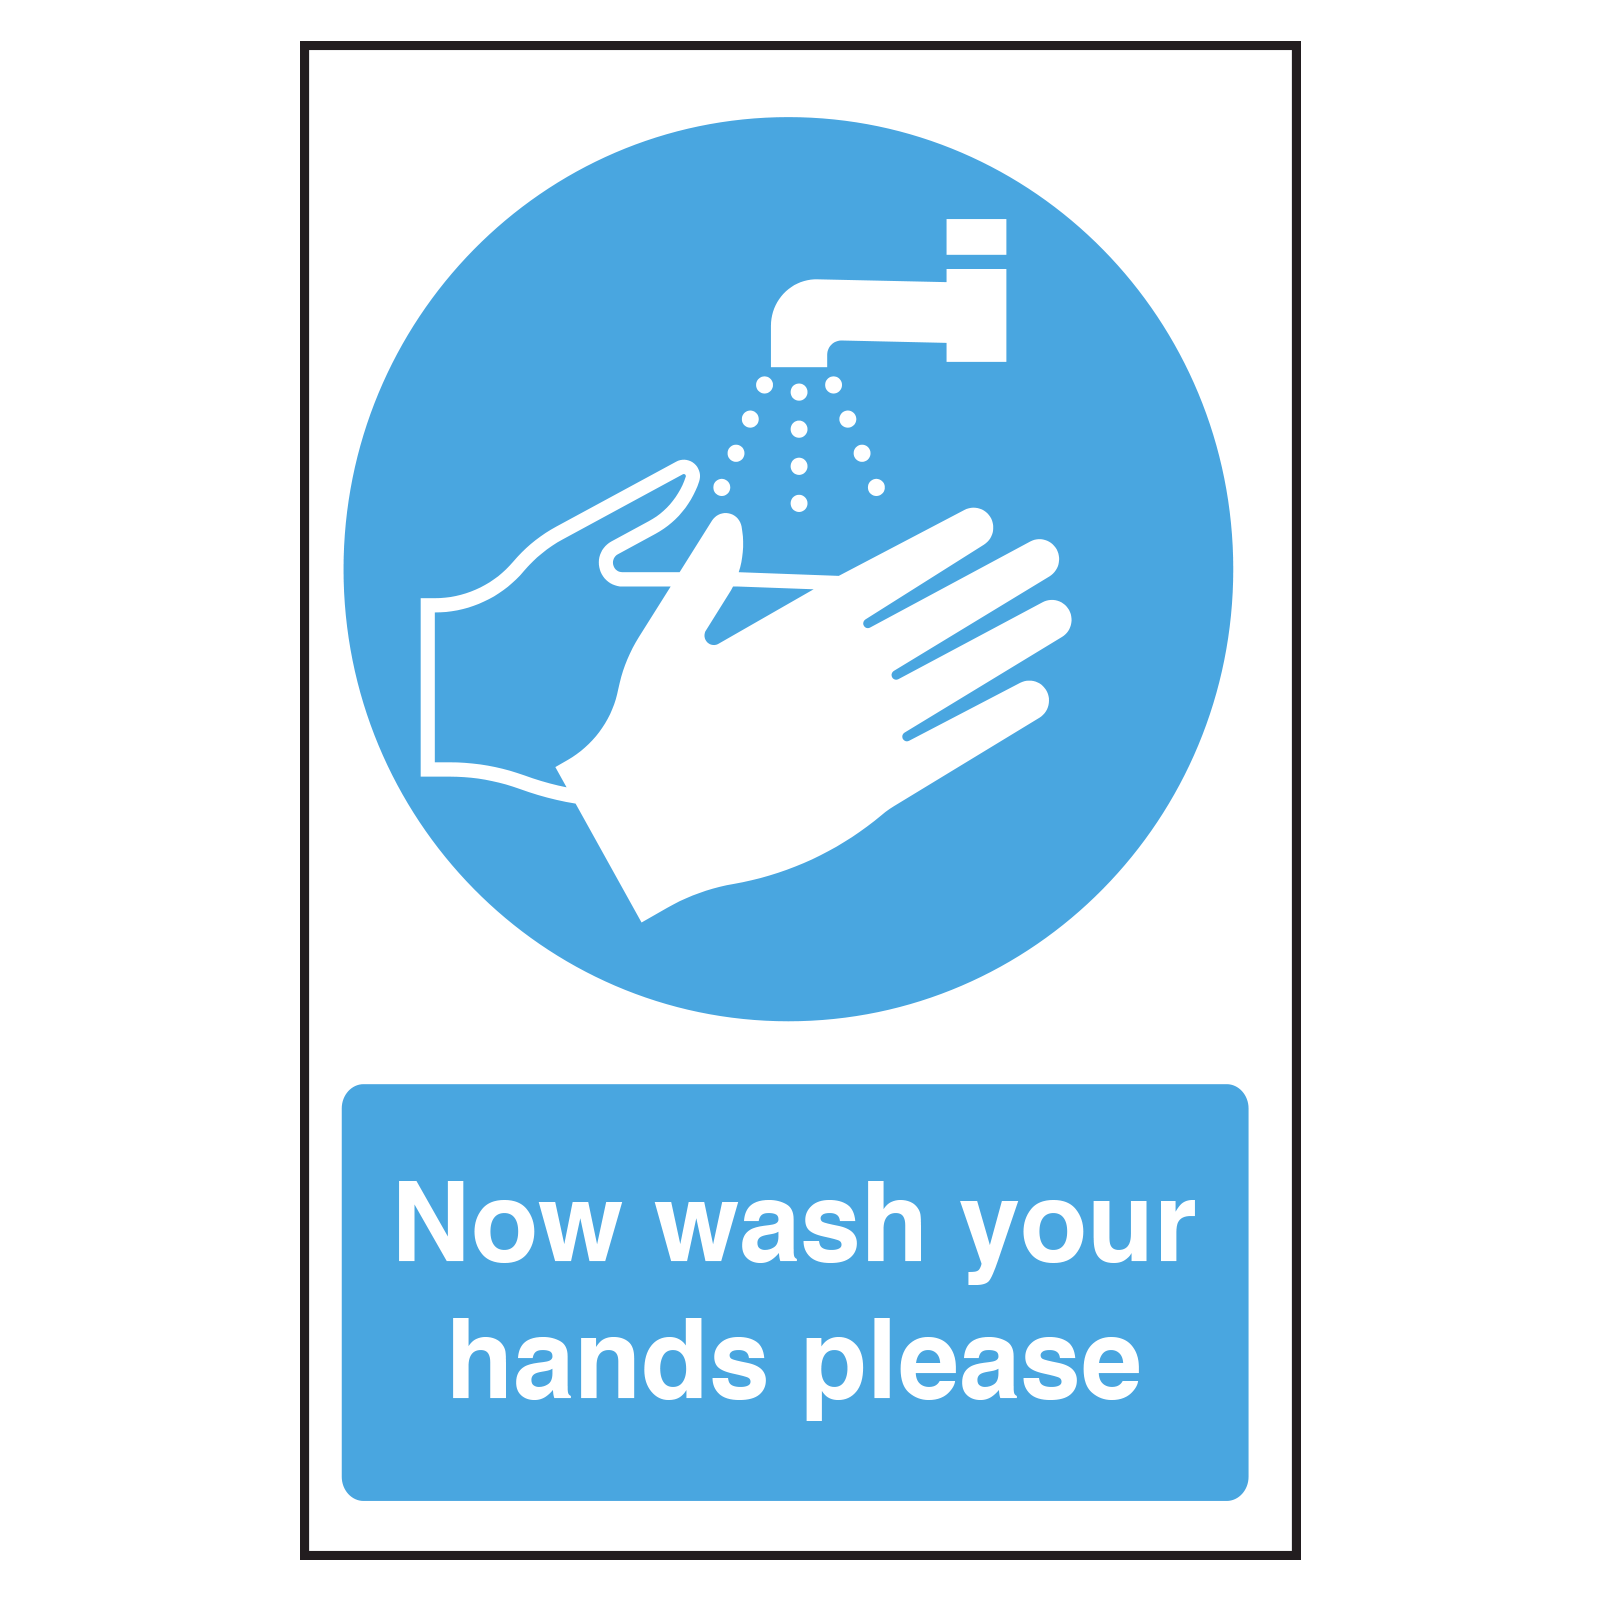 Wash Hands Sign Now Wash Your Hands Please